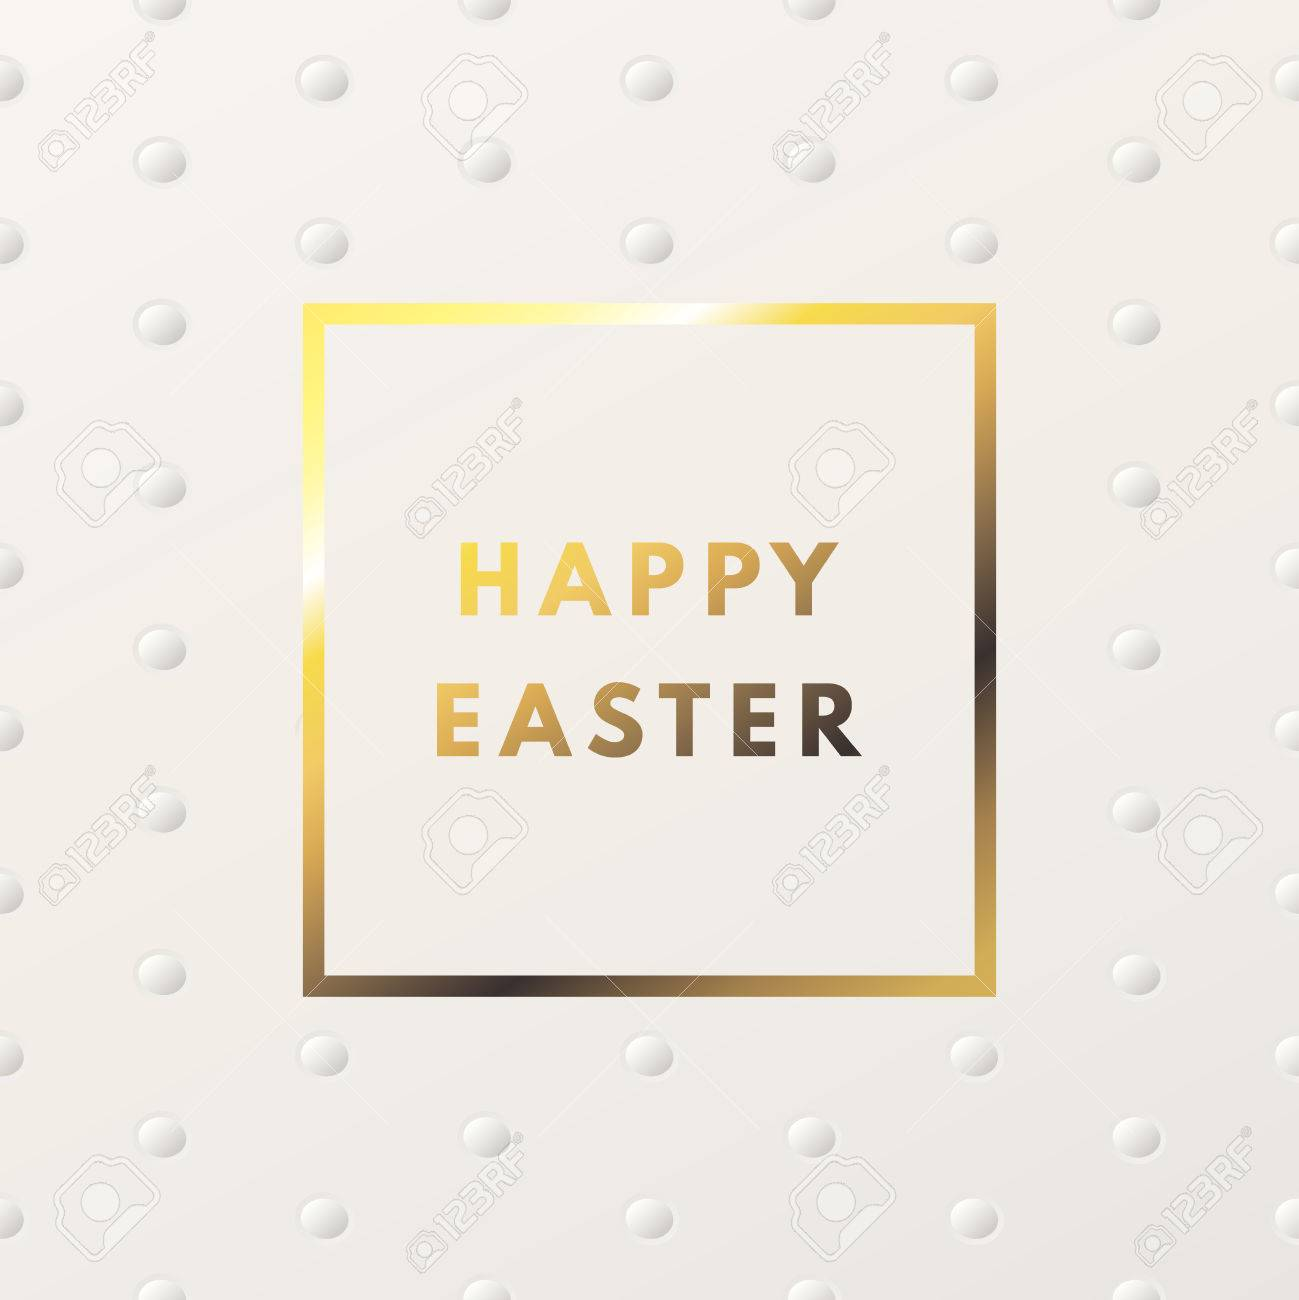 Happy easter greeting card easter minimal printable journaling happy easter greeting card easter minimal printable journaling card creative card art print m4hsunfo